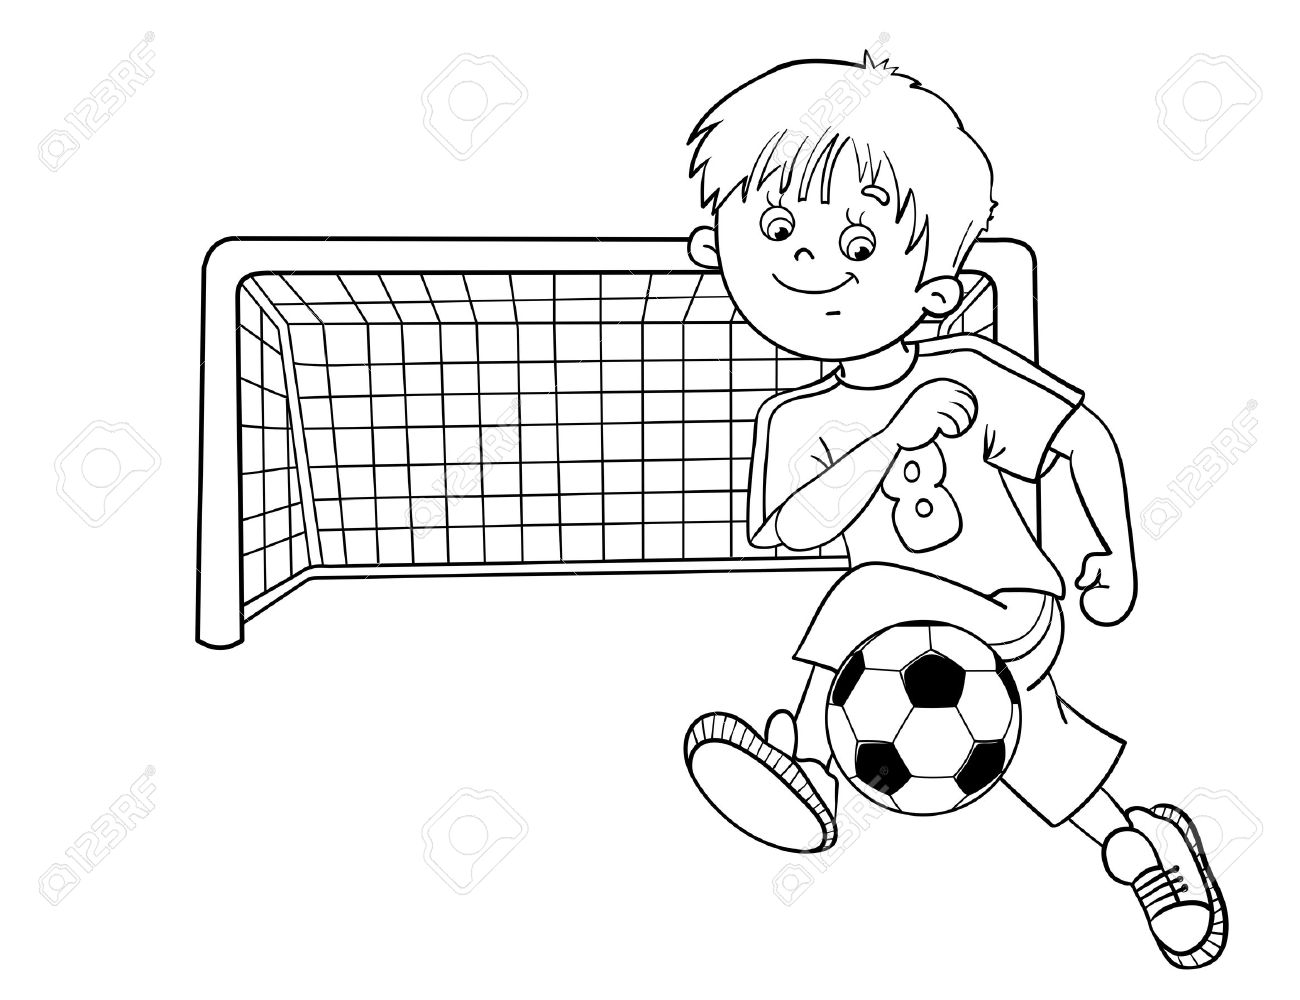 1300x1000 New Coloring Page Outline A Cartoon Boy With A Soccer Ball